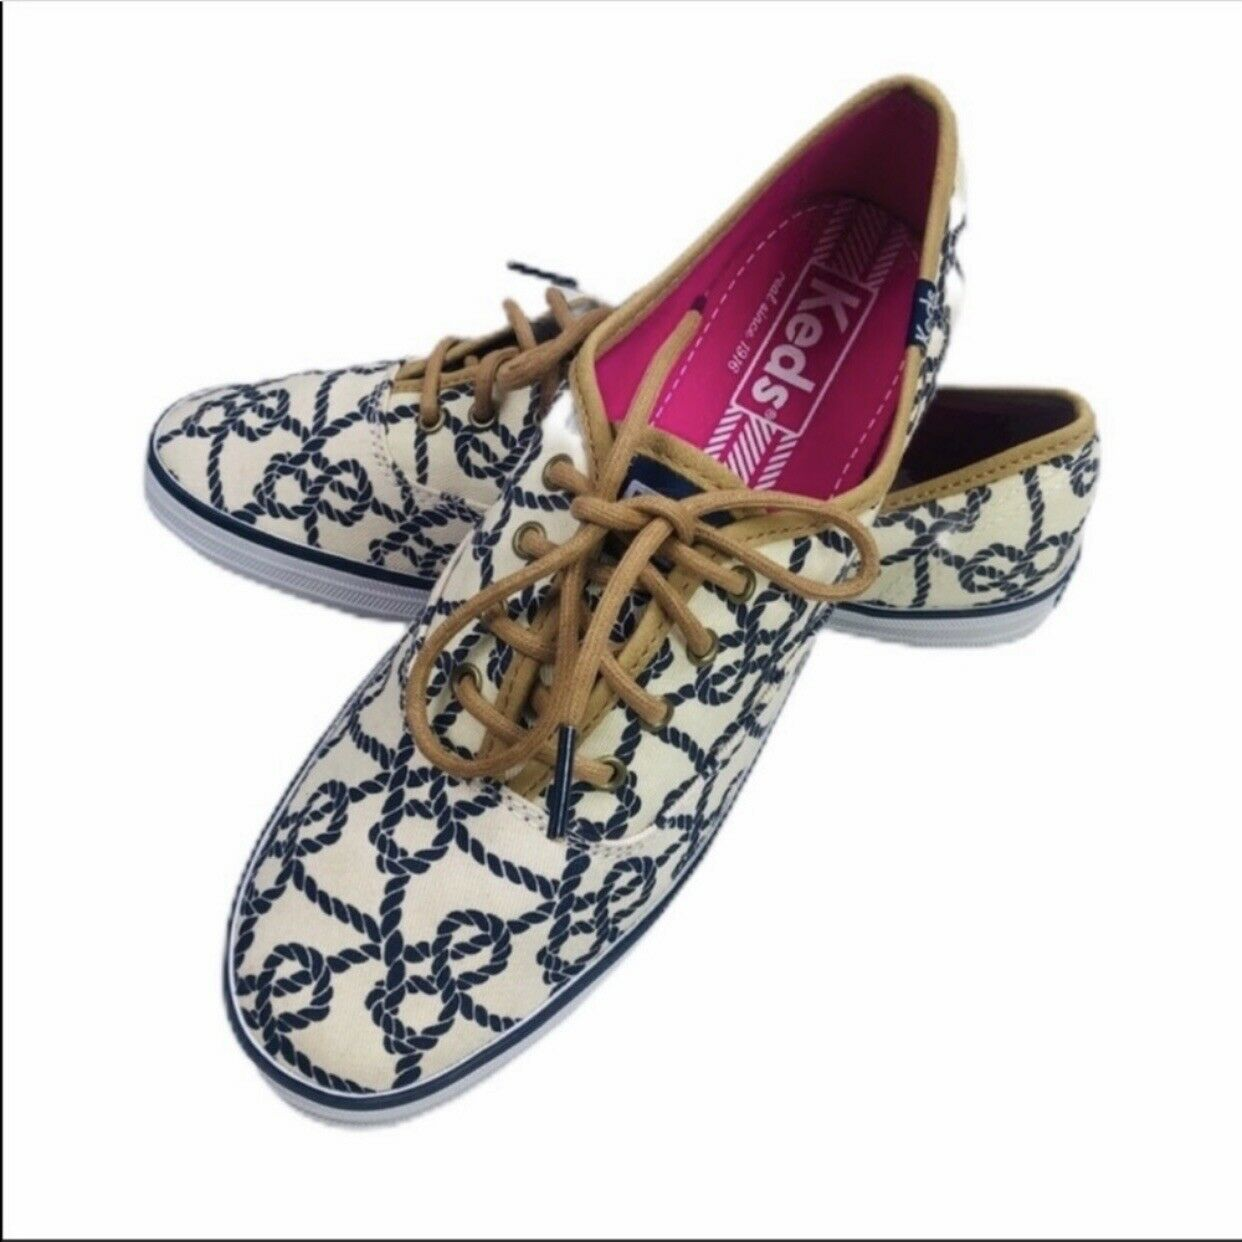 Keds Nautical Rope Print Sneakers Blue & White Size 7.5